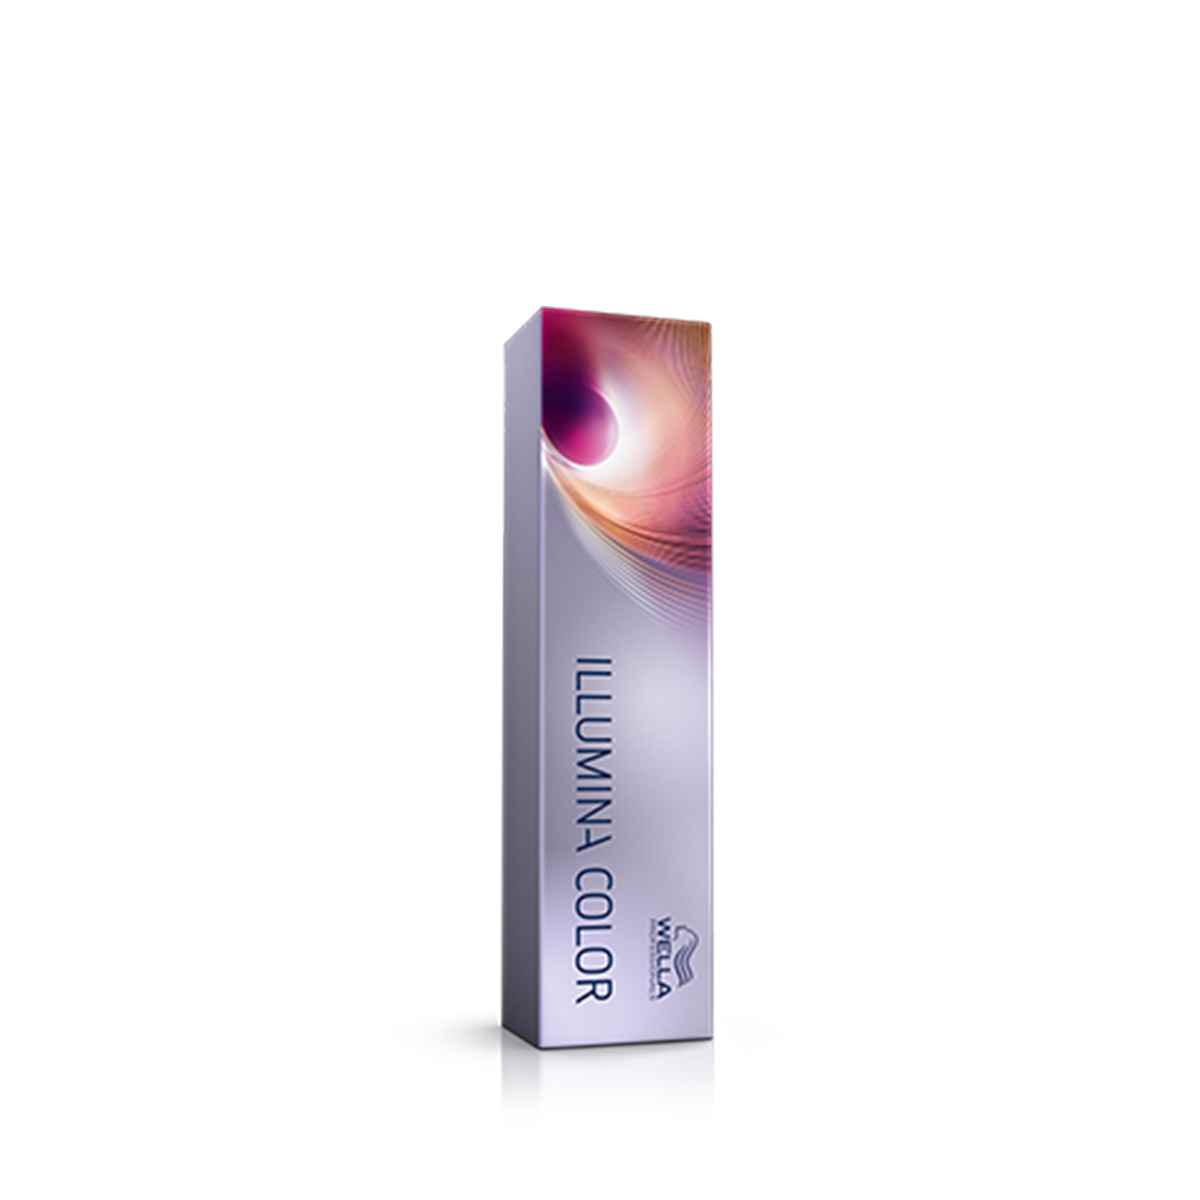 Illumina Color 60 Ml Biondo Chiaro Dorato Perla